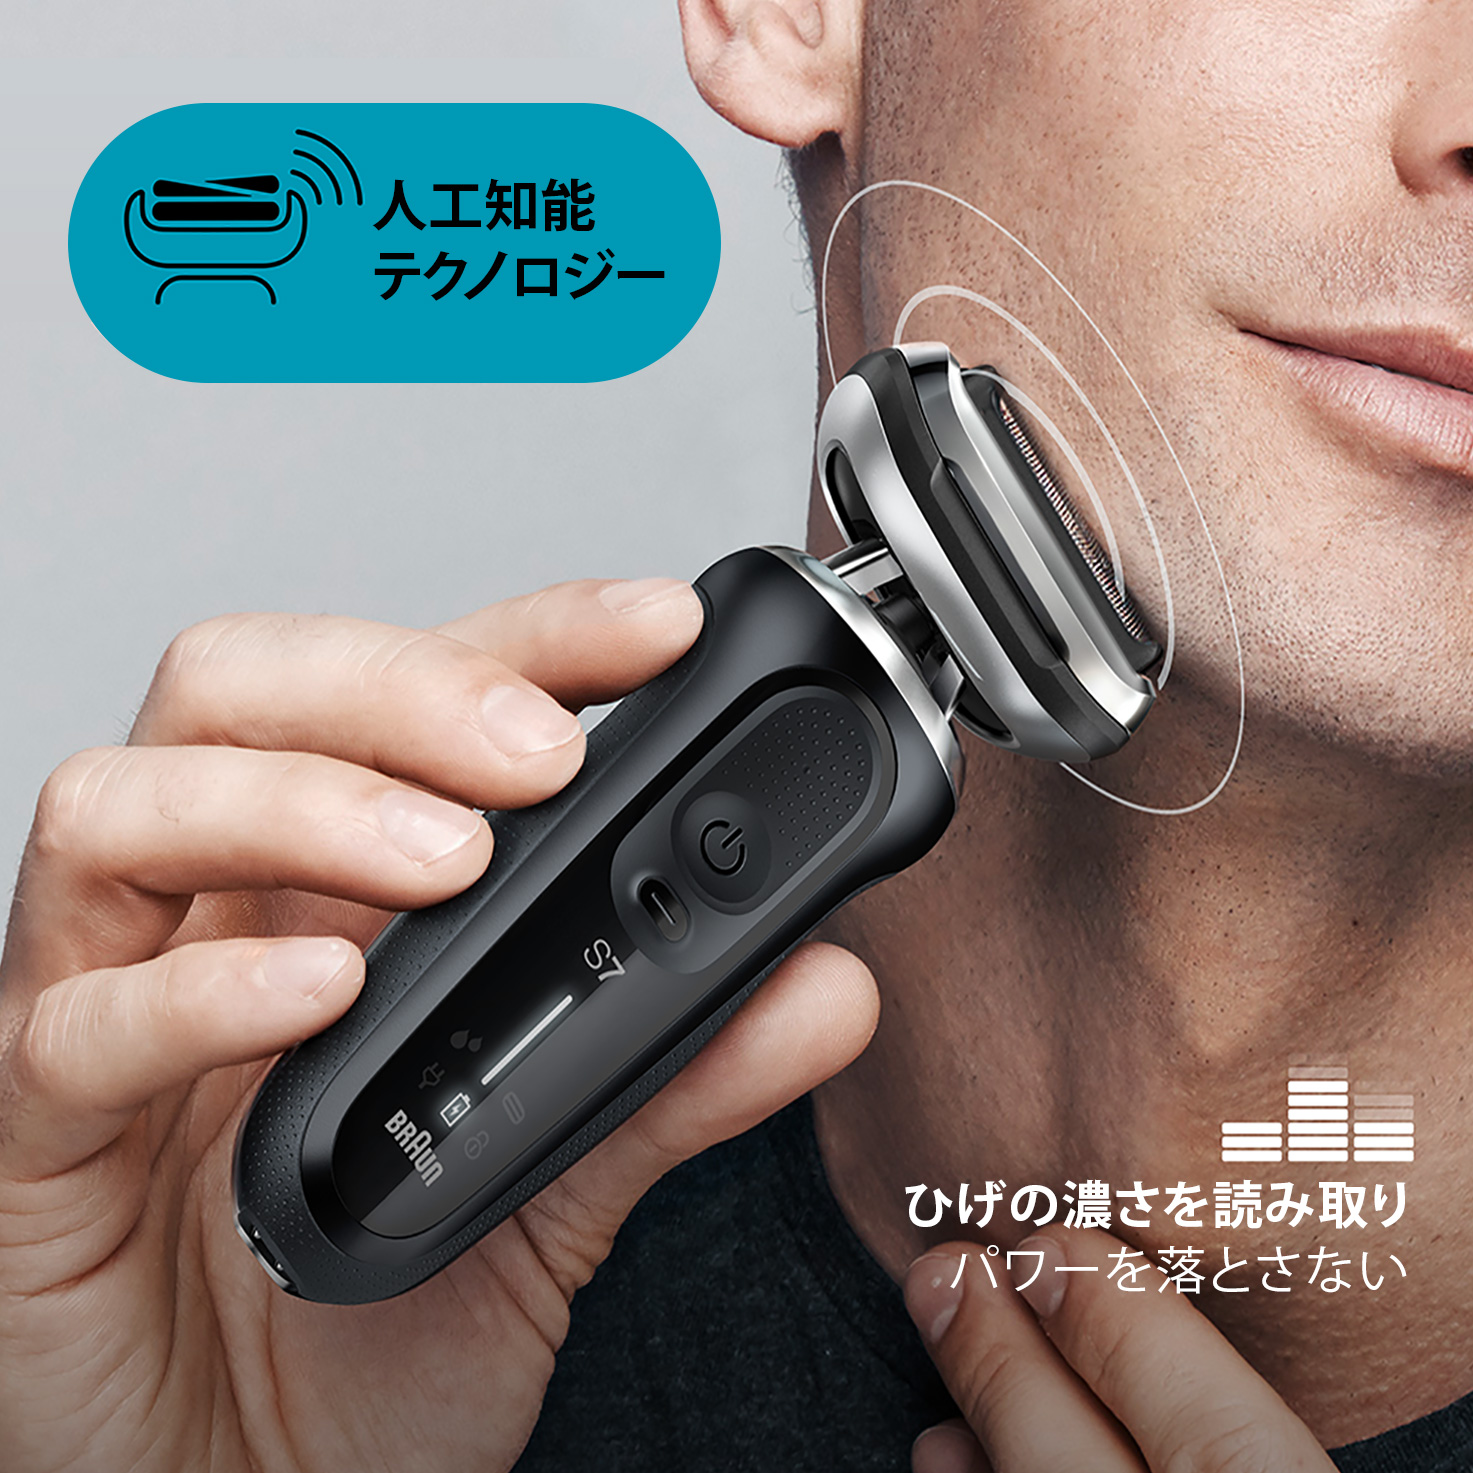 Braun Series 7 noir autosense technology